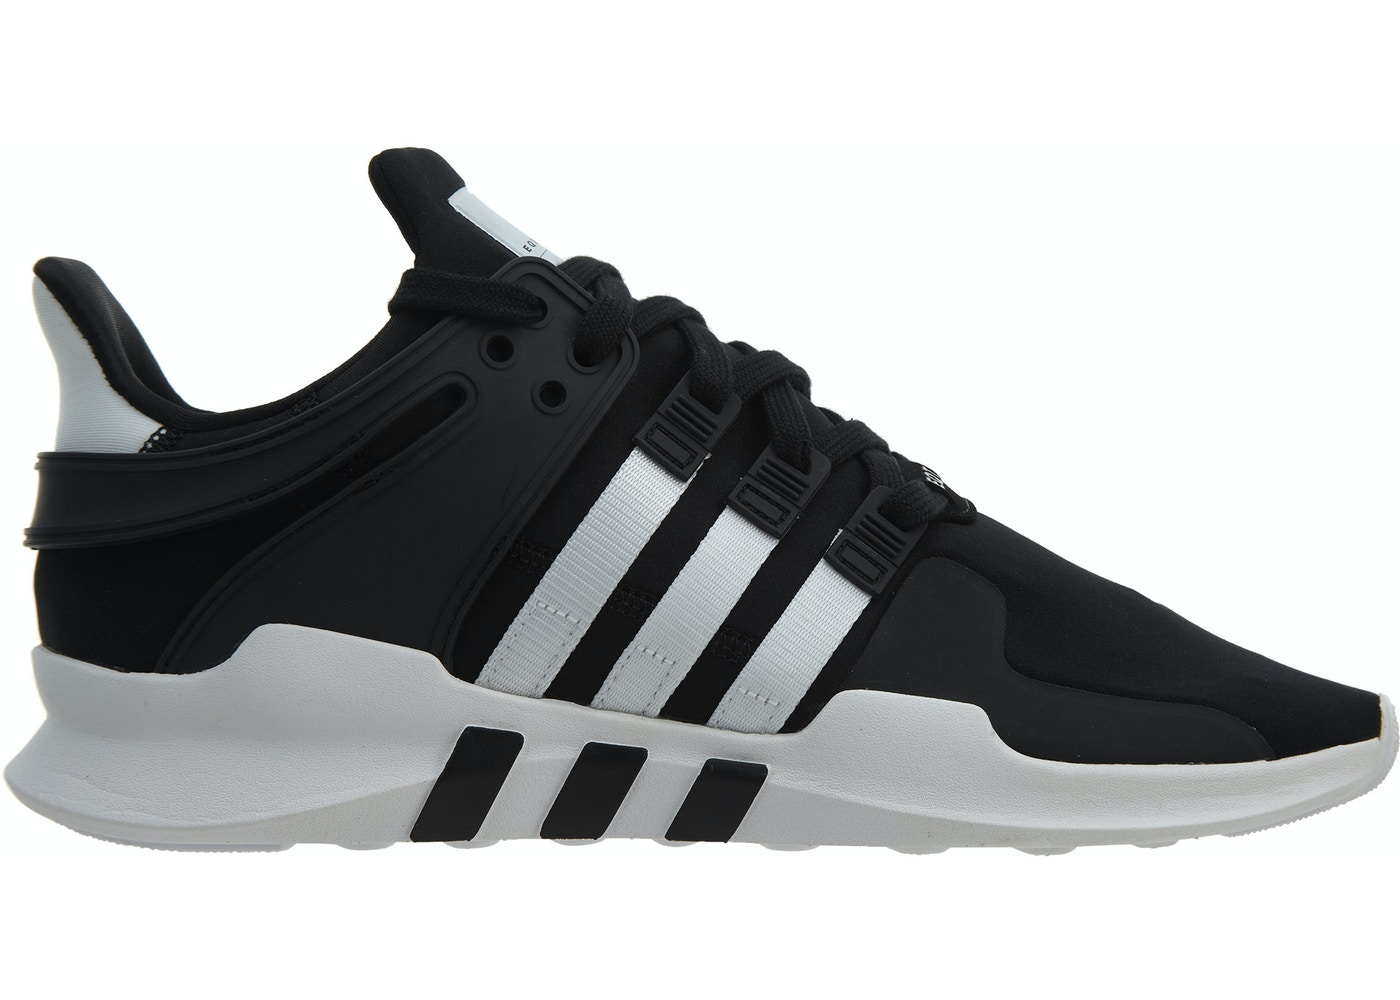 new concept 1c3a1 f2b8c Sell. or Ask. Size 11.5. View All Bids. adidas Eqt Support Adv Black ...